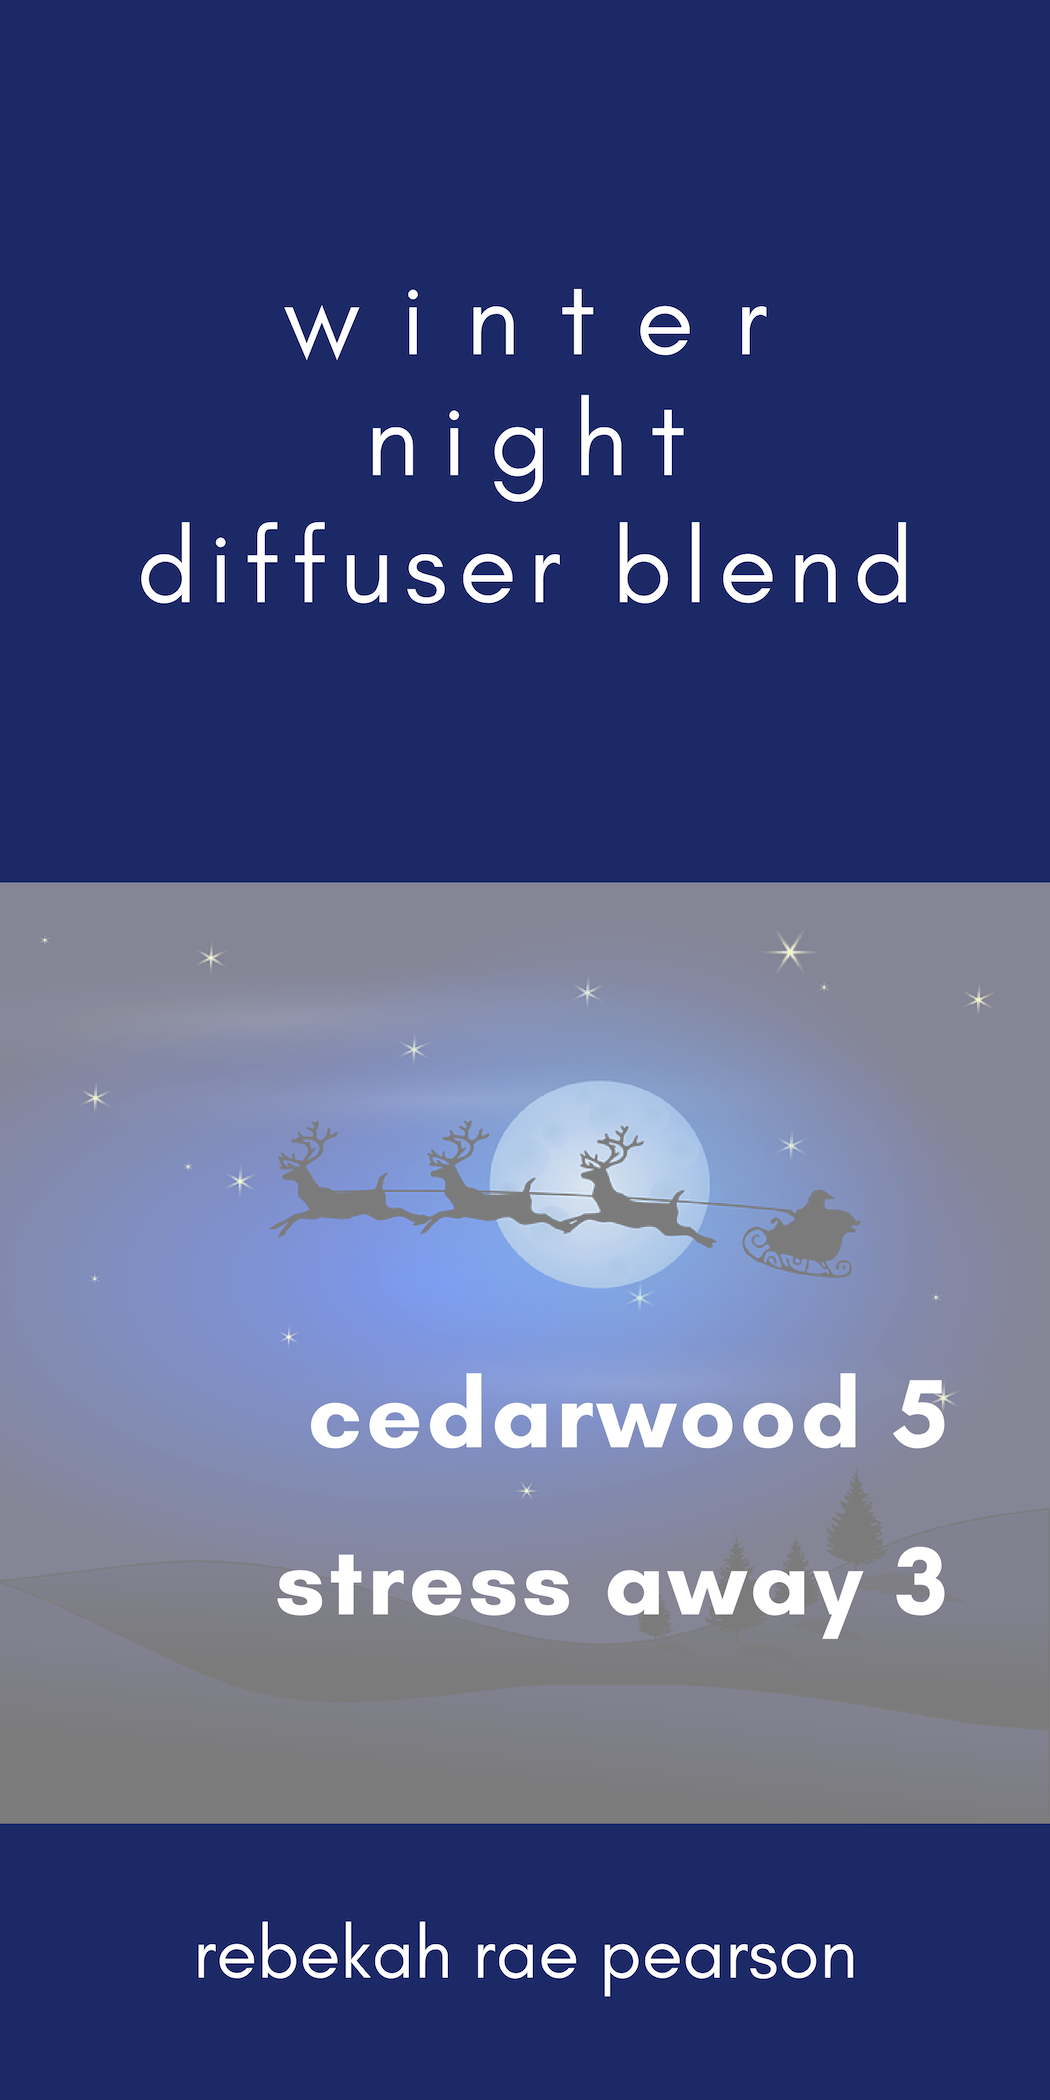 winter night essential oil diffuser blend #winterdiffuserblends Try this calming aroma on a cold winter night. You'll love this essential oil diffuser blend.   Want to learn more about essential oils, but don't have time? Subscribe to The Essential Oil Quickcast, now on iTunes, and learn about essential oils 5 minutes at a time!  Essential oils, along with diet, exercise, and a healthy lifestyle, will have you feeling your best! This podcast will help you incorporate essential oils into your dai #winterdiffuserblends